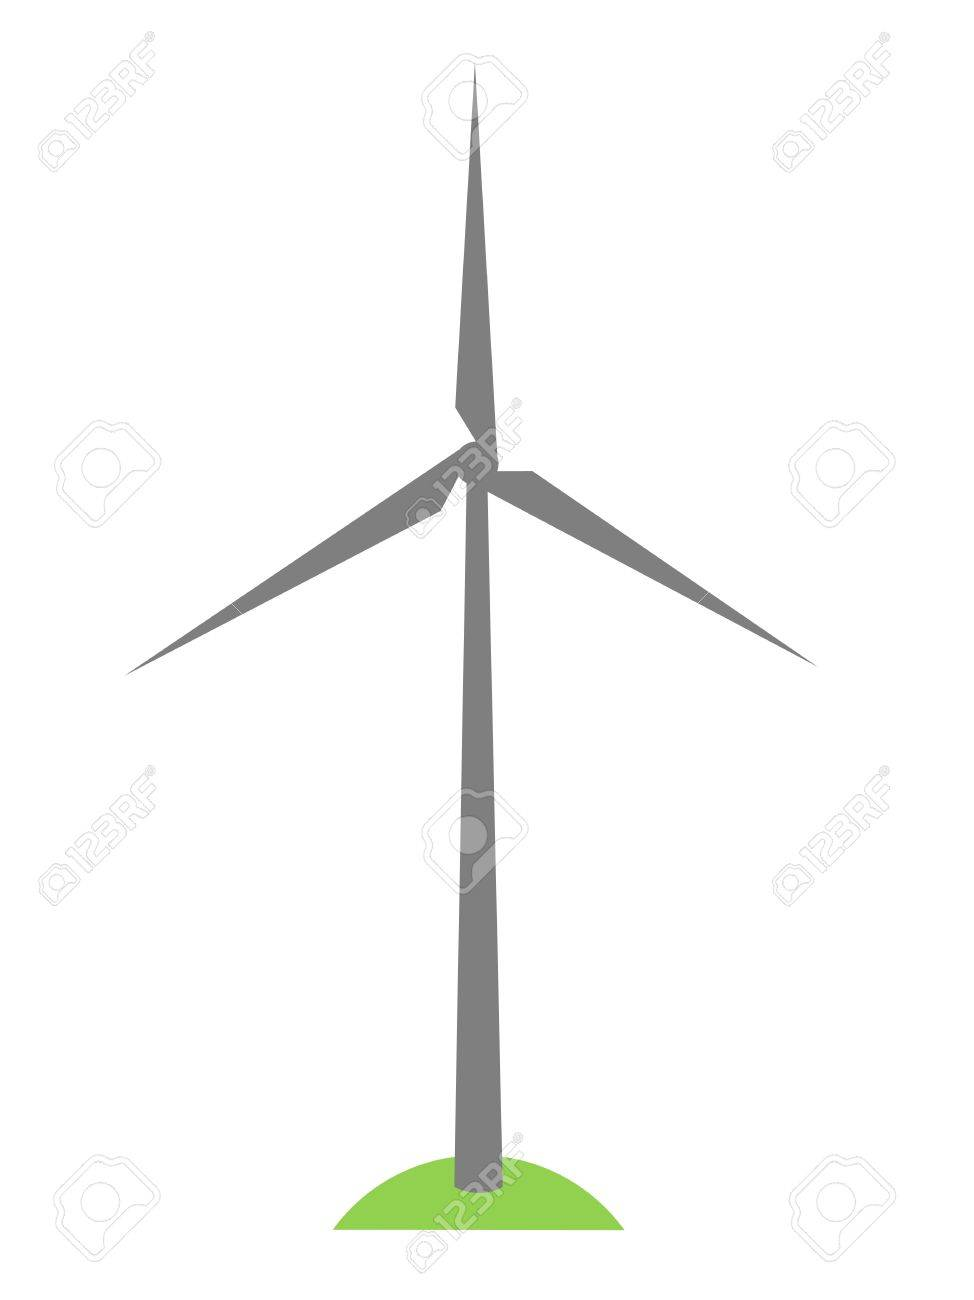 Simplewind Turbine Symbol On Green Grass Royalty Free Cliparts